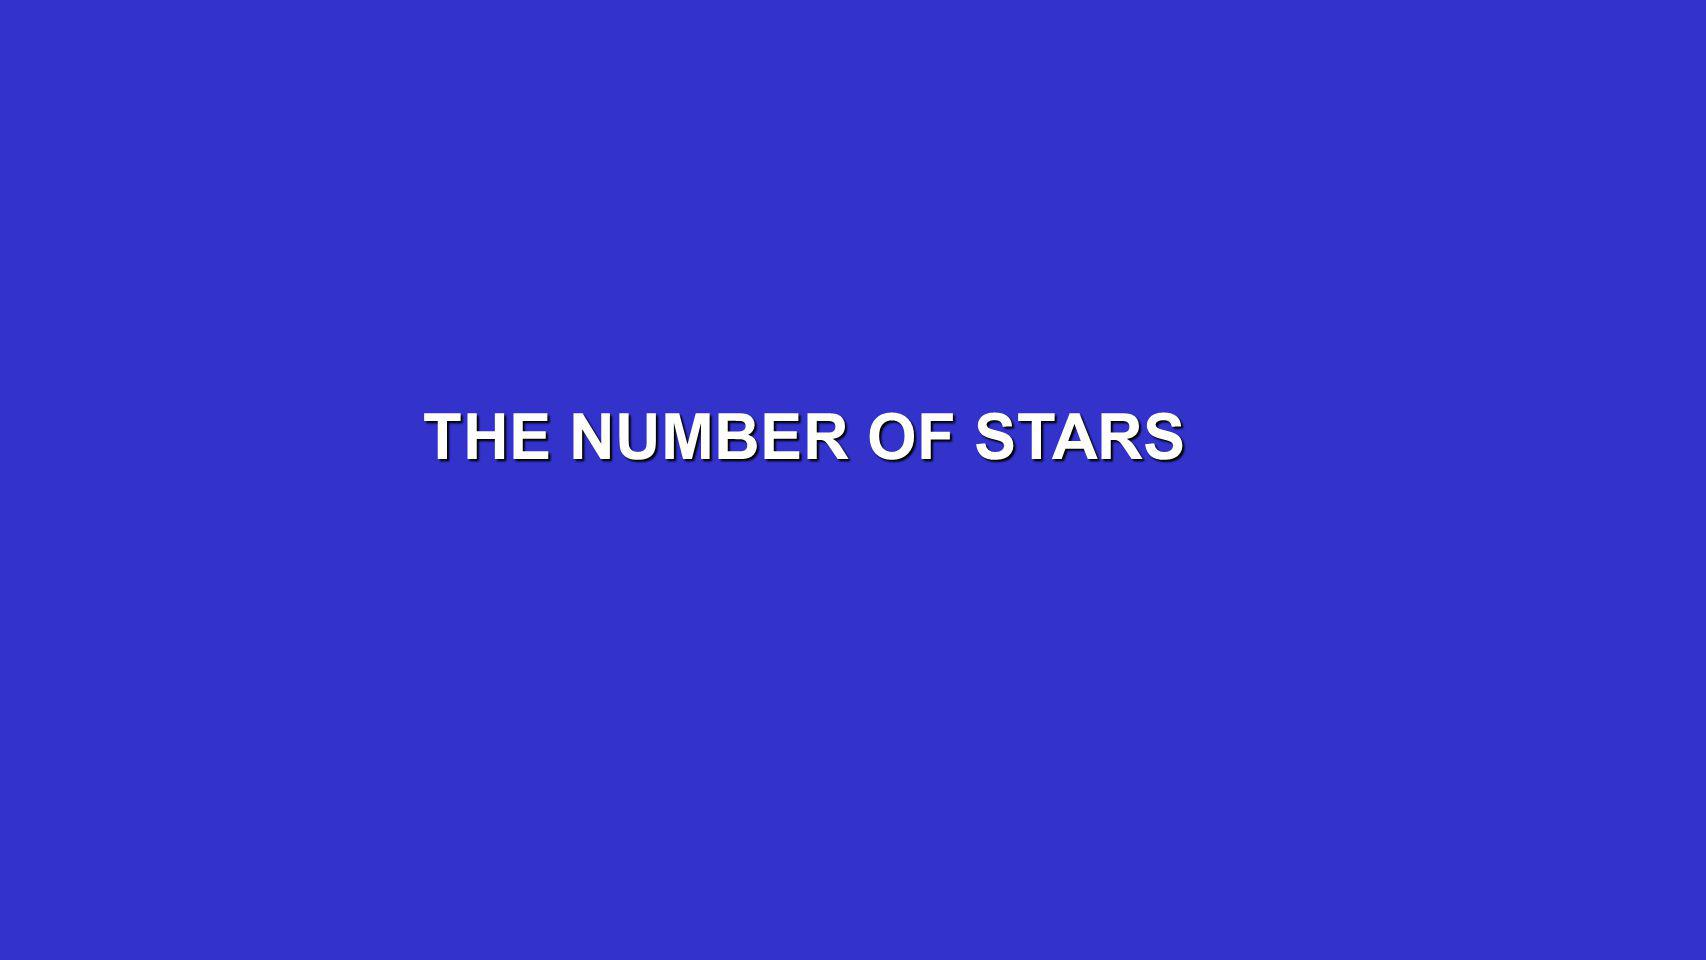 THE NUMBER OF STARS